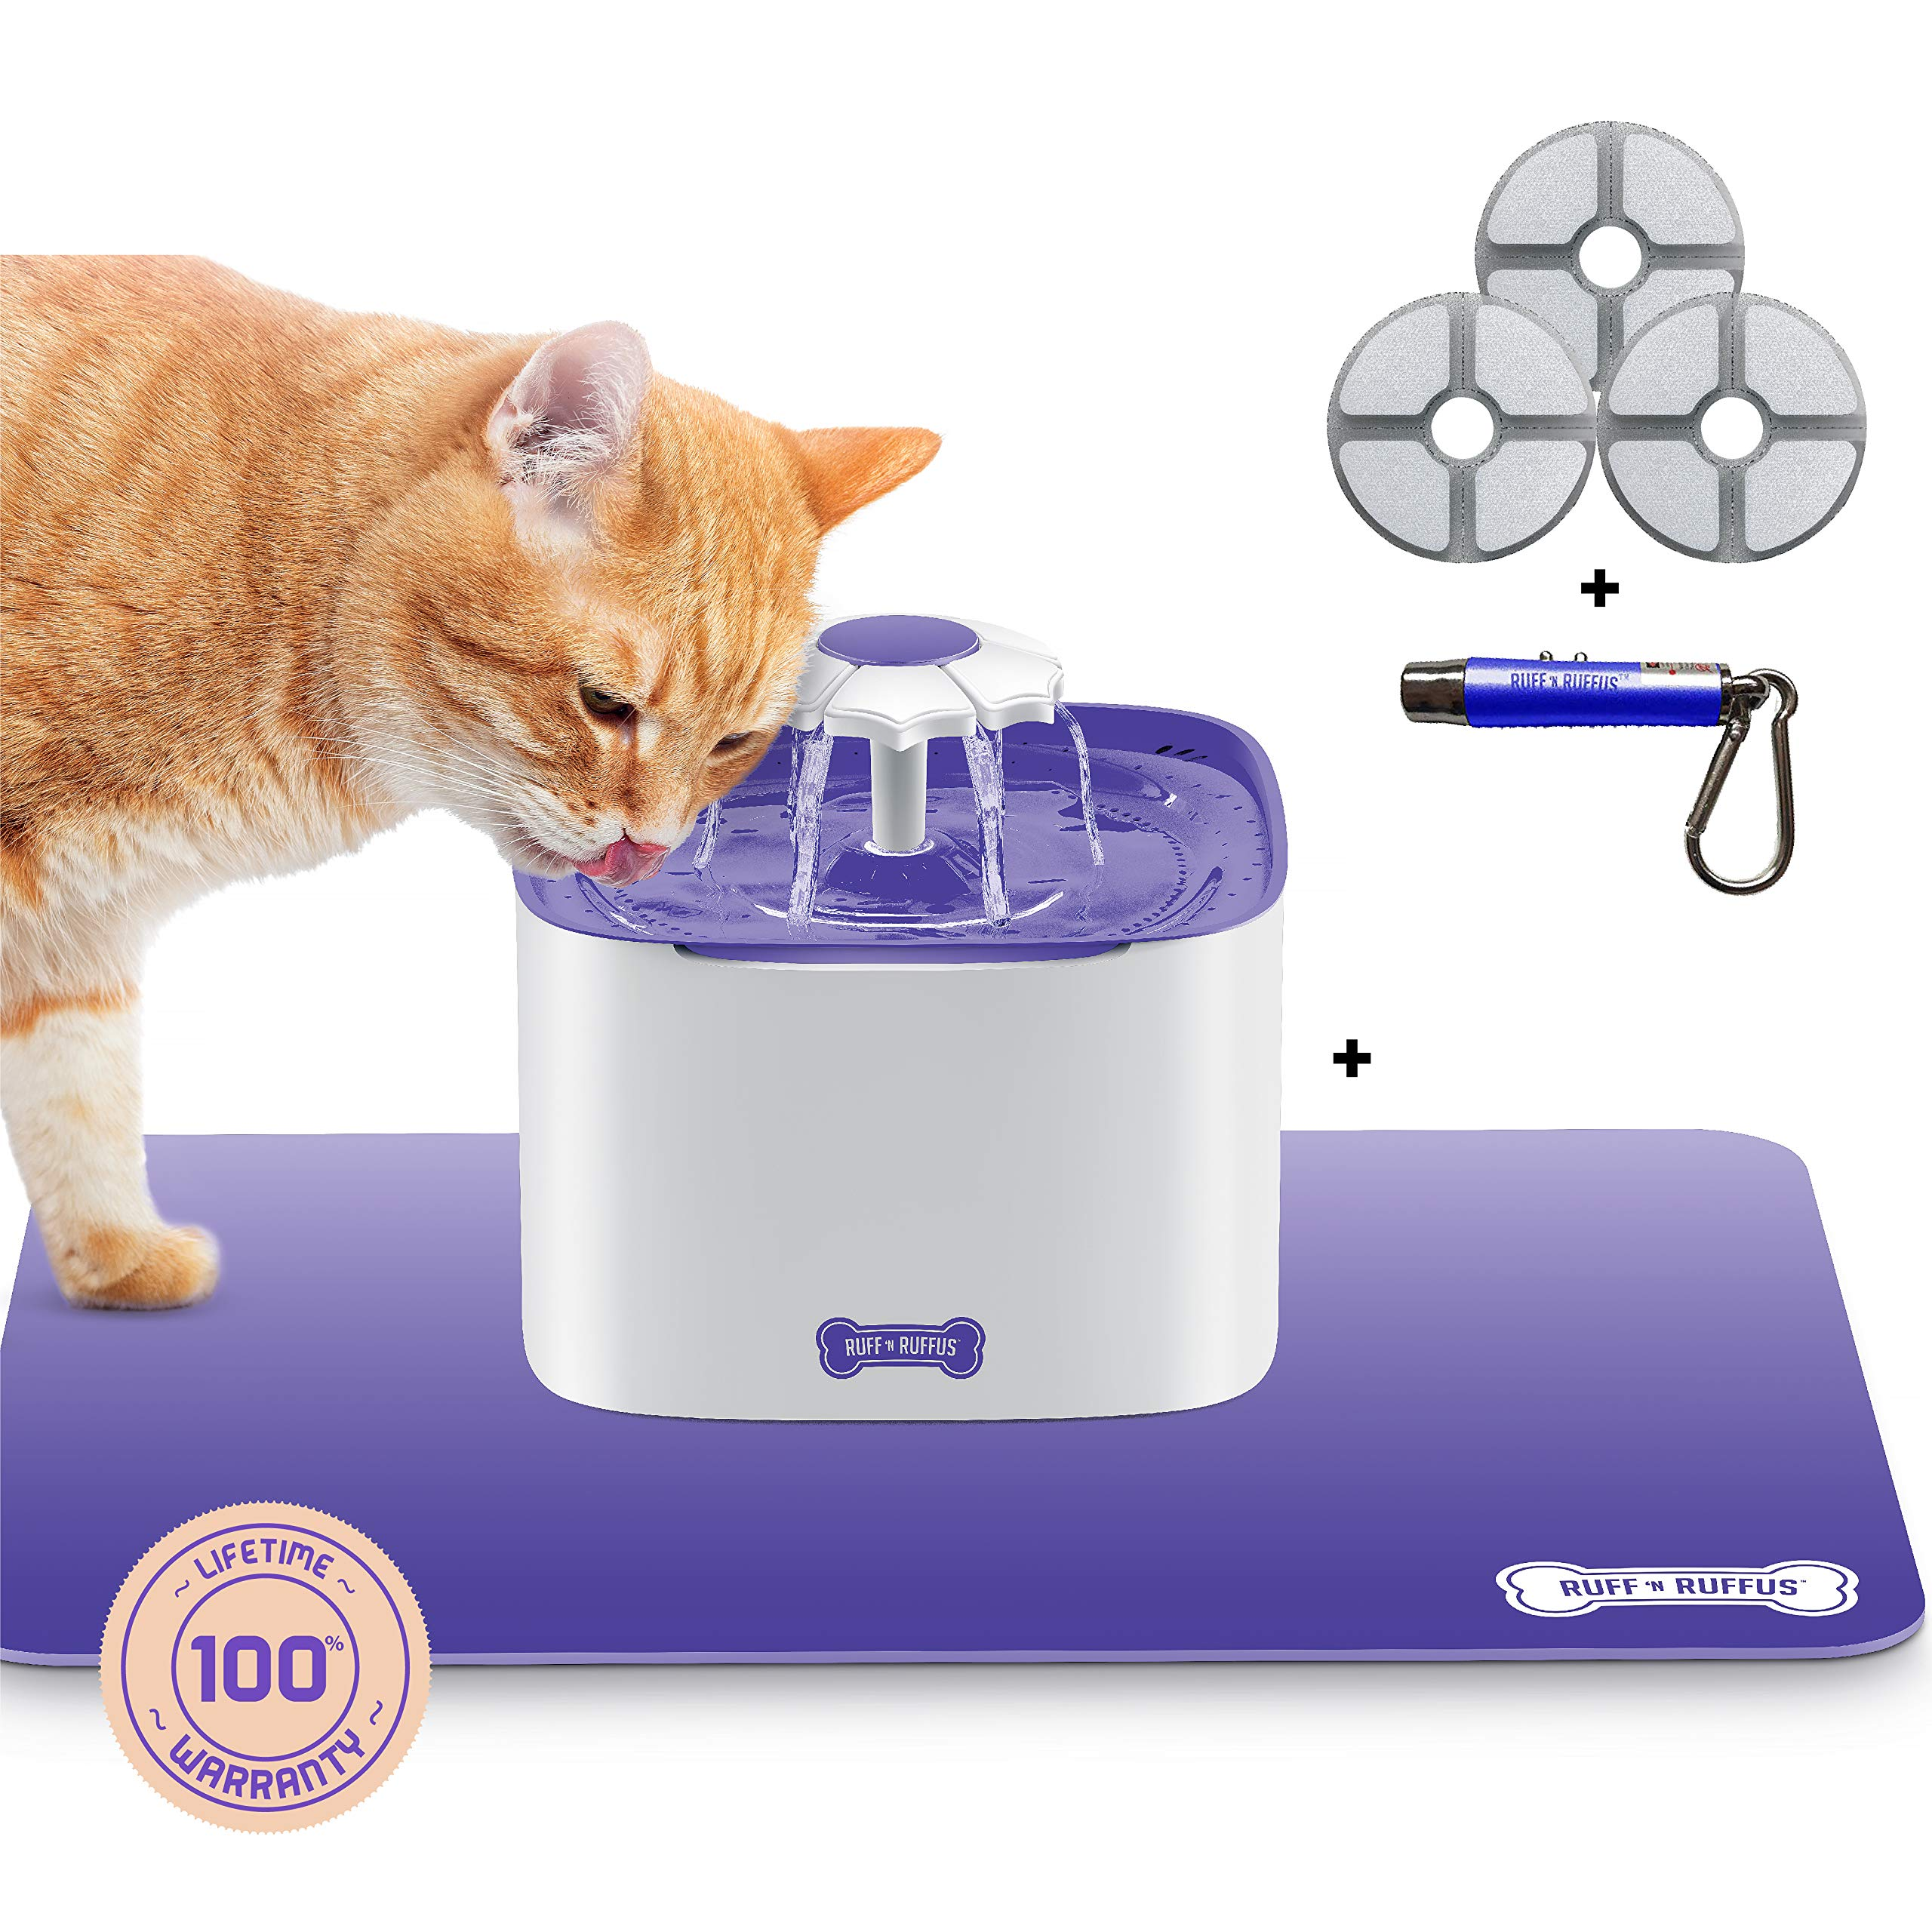 Ruff 'n Ruffus Cat Drinking Water Fountain with 3 Free Filters + Free Silicone Mat + Free Handheld Toy | 2-Liter Automatic Water Dispenser